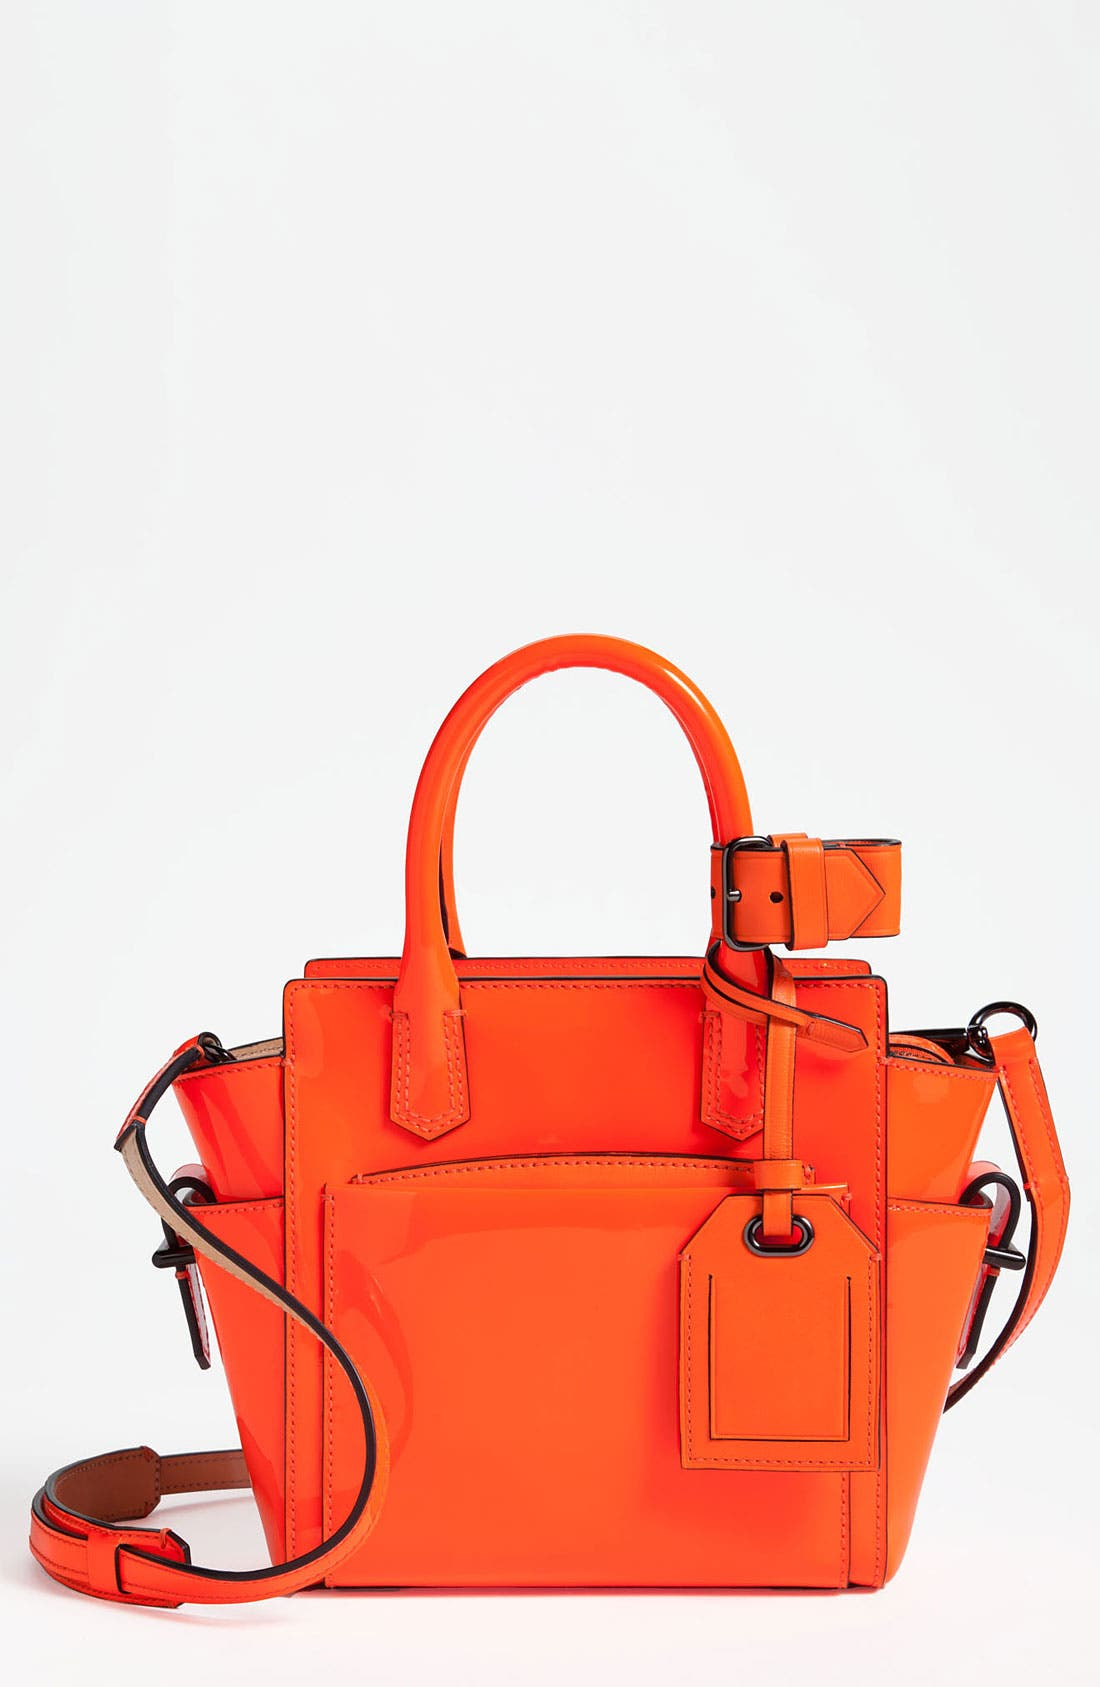 Main Image - Reed Krakoff 'Atlantique - Micro' Patent Leather Satchel